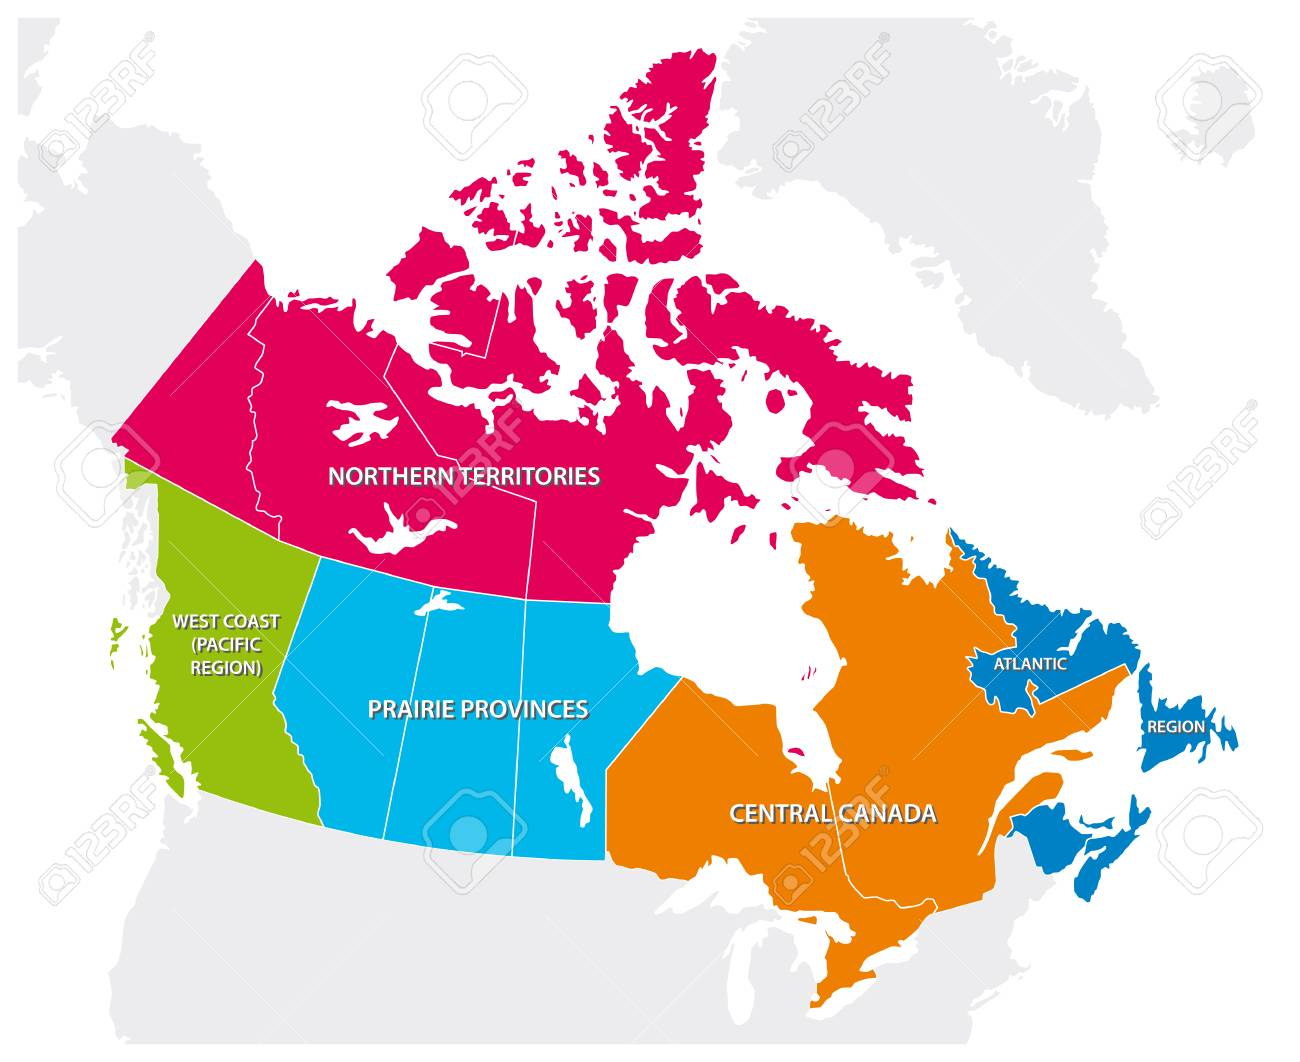 Map Of The Regions Of Canada.Outline Map Of The Five Canadian Regions